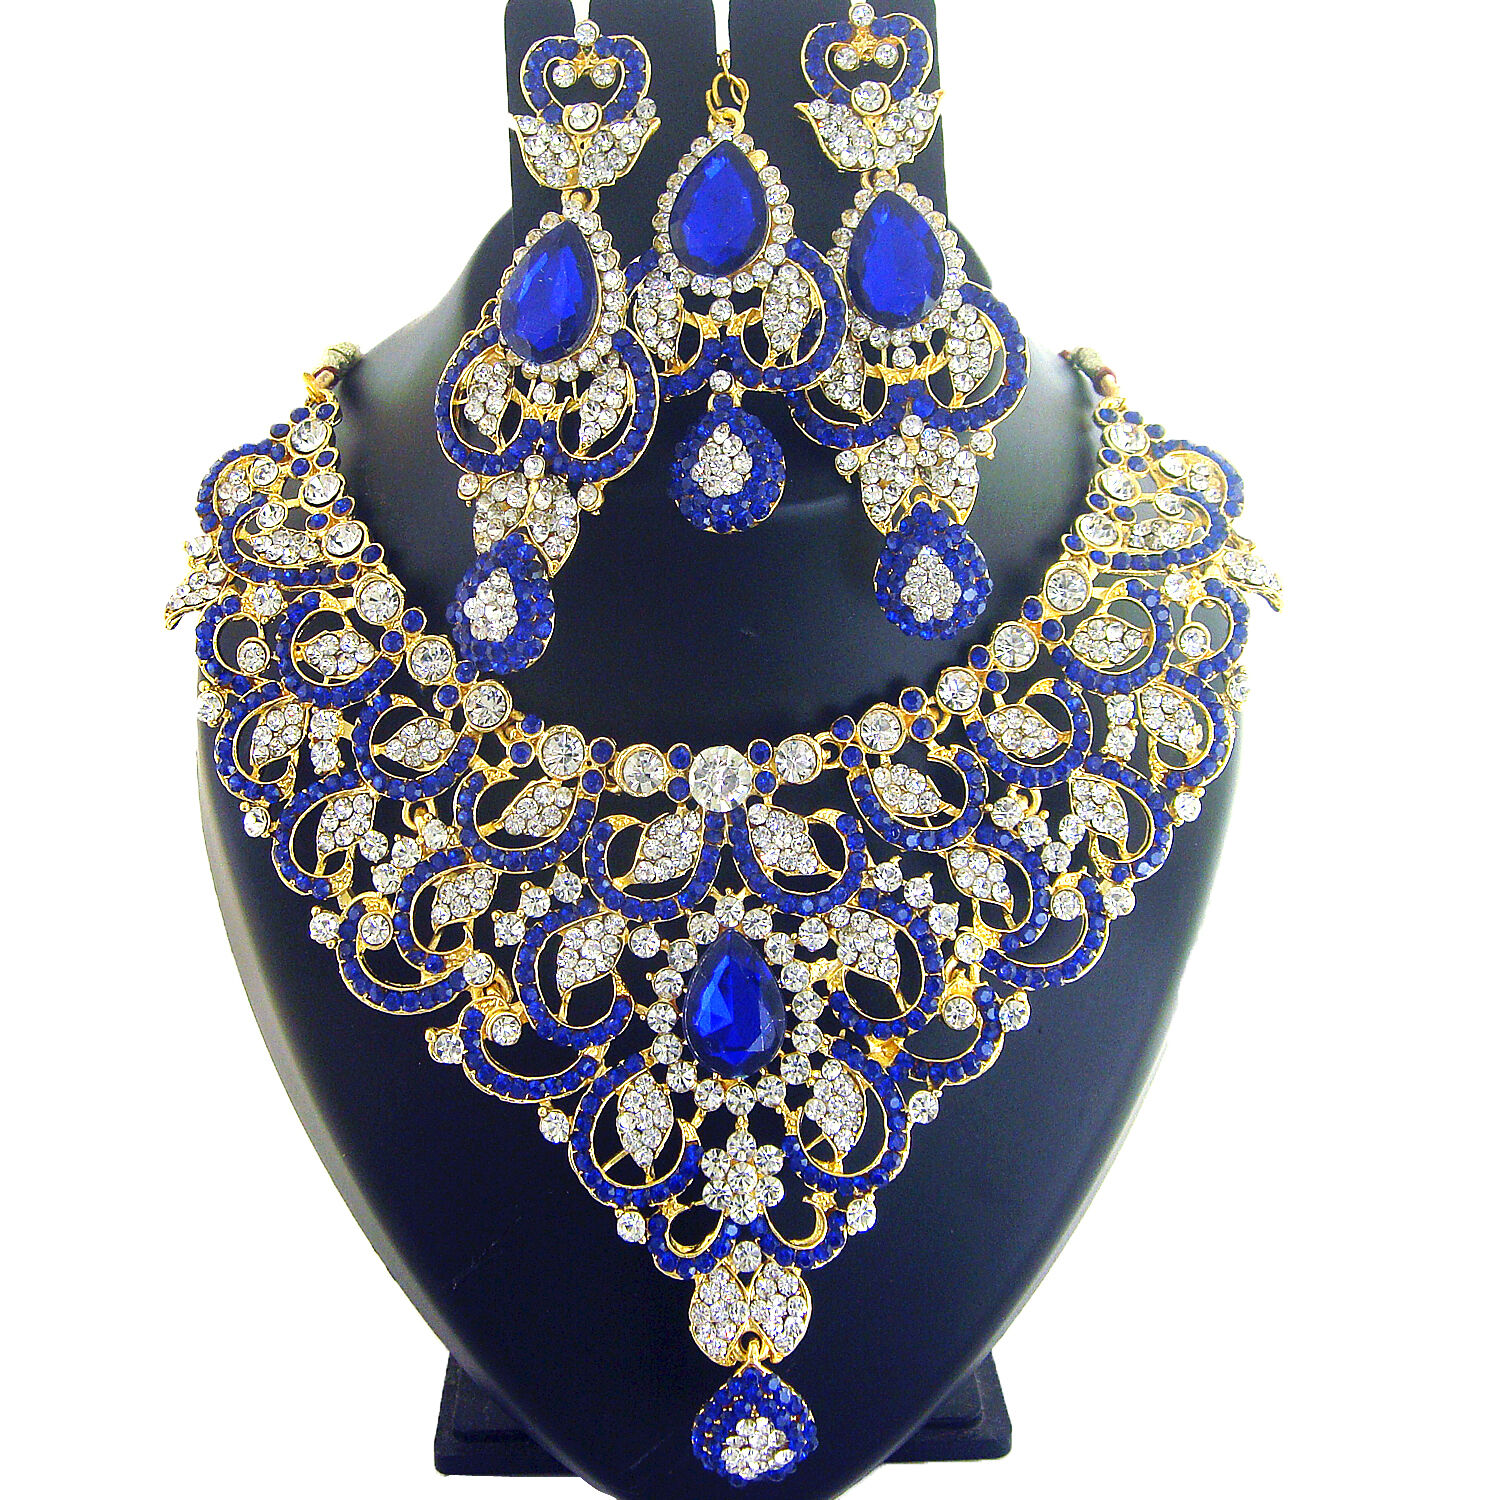 4056 Indian Bridal Jewelry Bollywood New Necklace Ethnic: INDIAN JEWELRY ETHNIC Bridal Necklace Bollywood